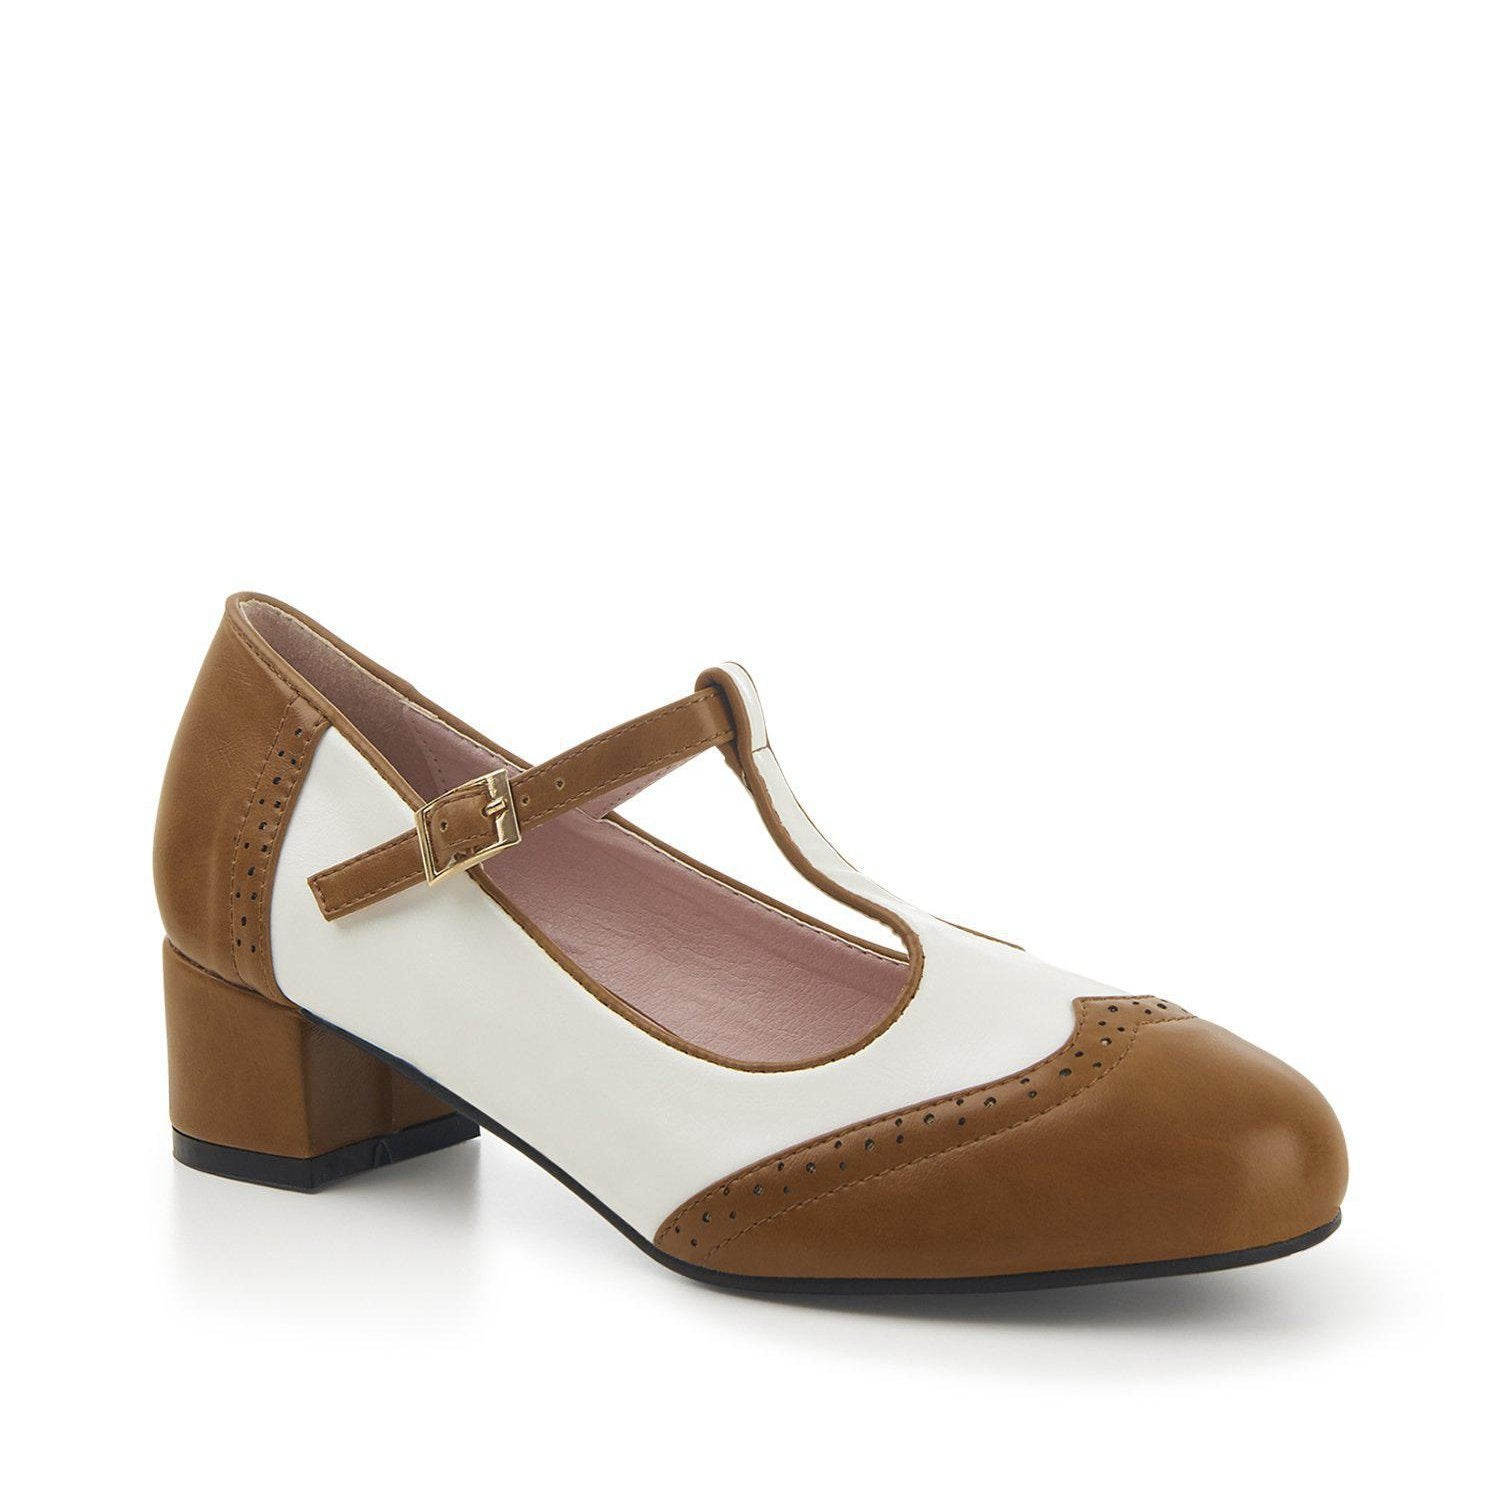 Lulu Hun Georgia Block Heel Shoes-Brown/White-Vendemia